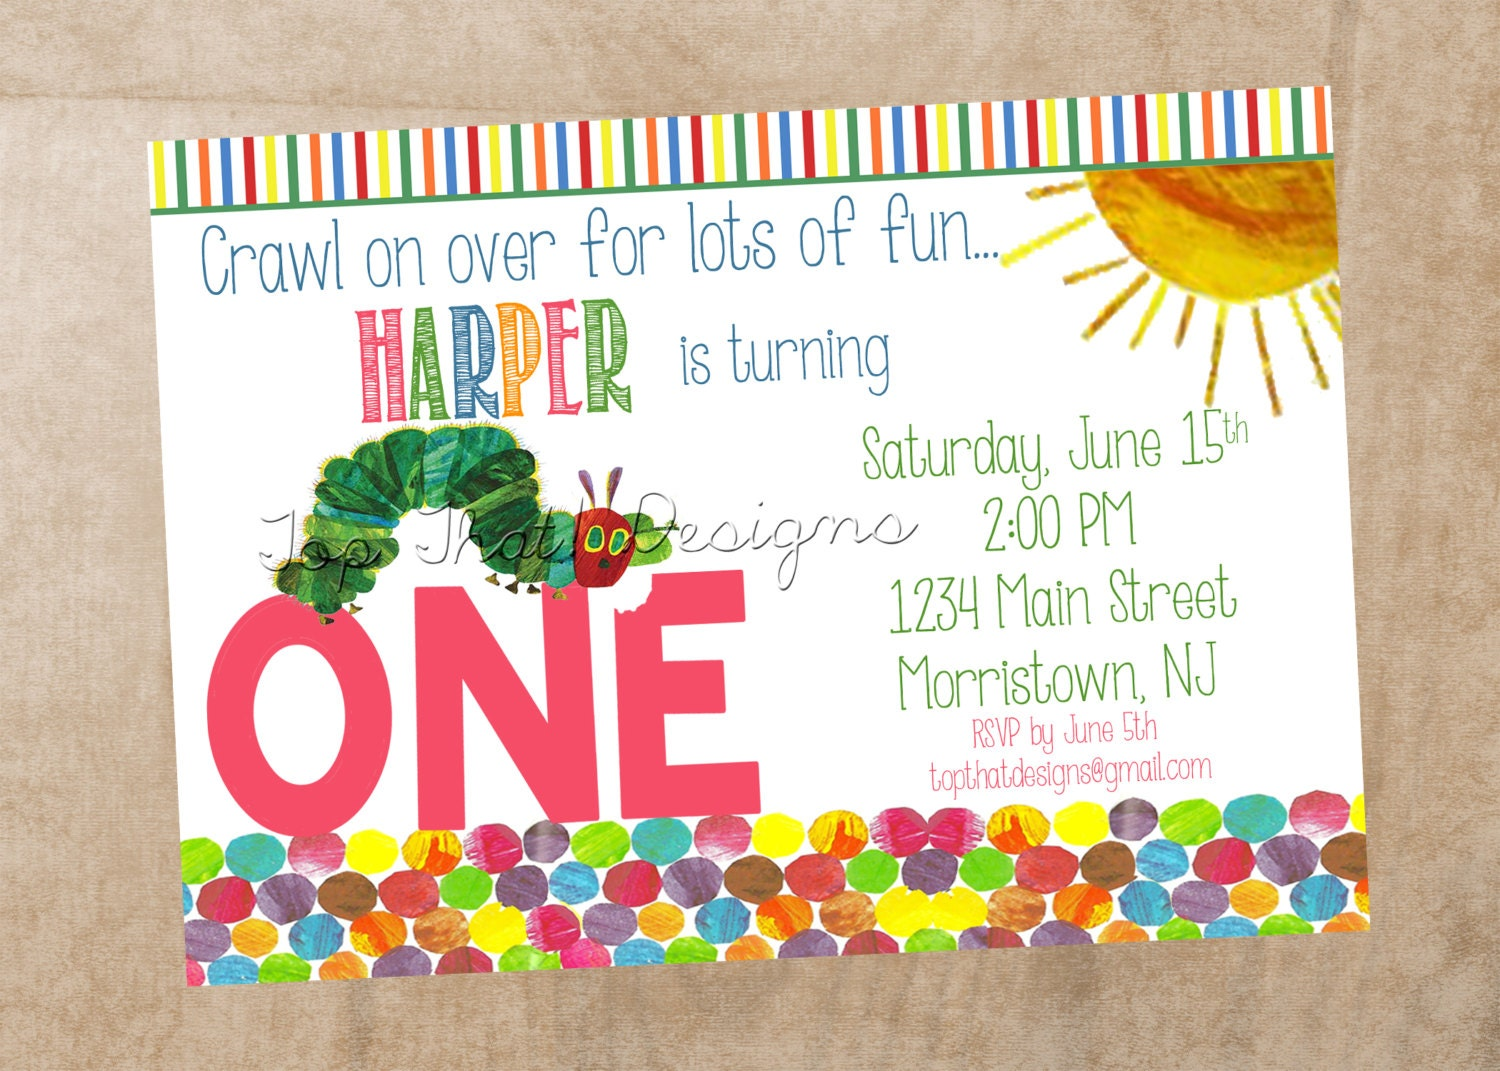 Very hungry caterpillar invitations - Lookup BeforeBuying